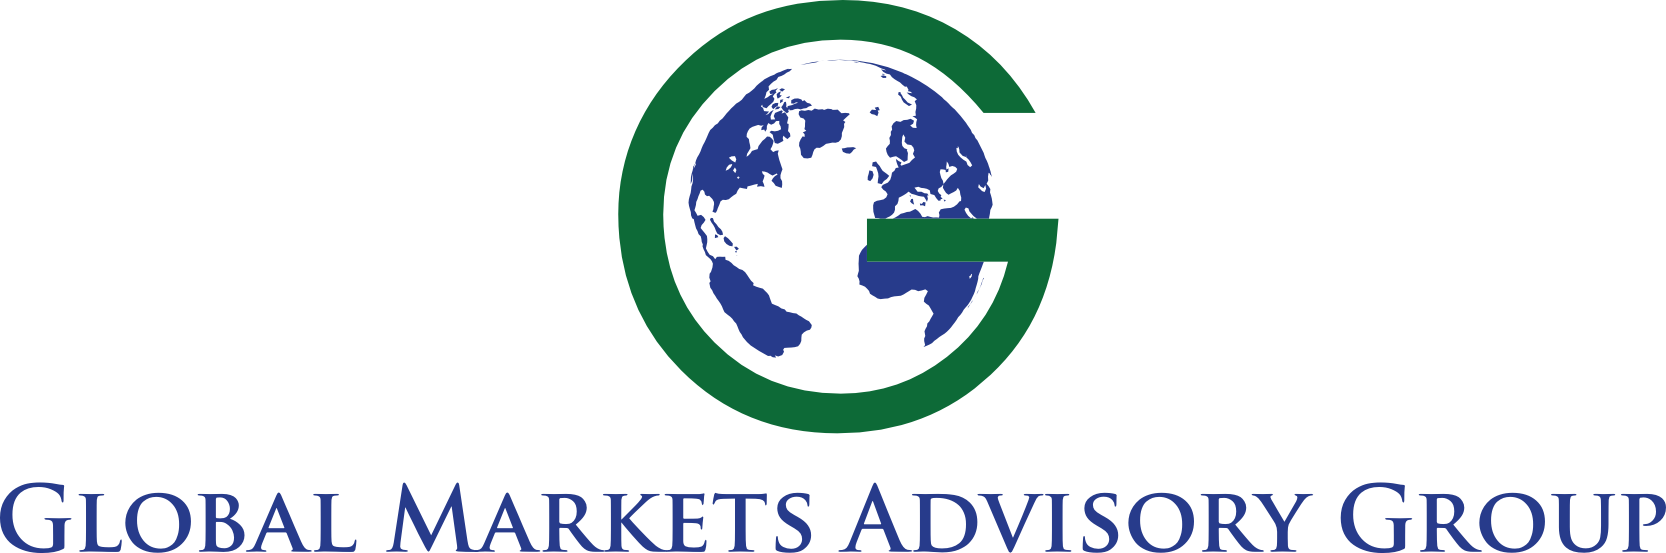 Global Markets Advisory Group